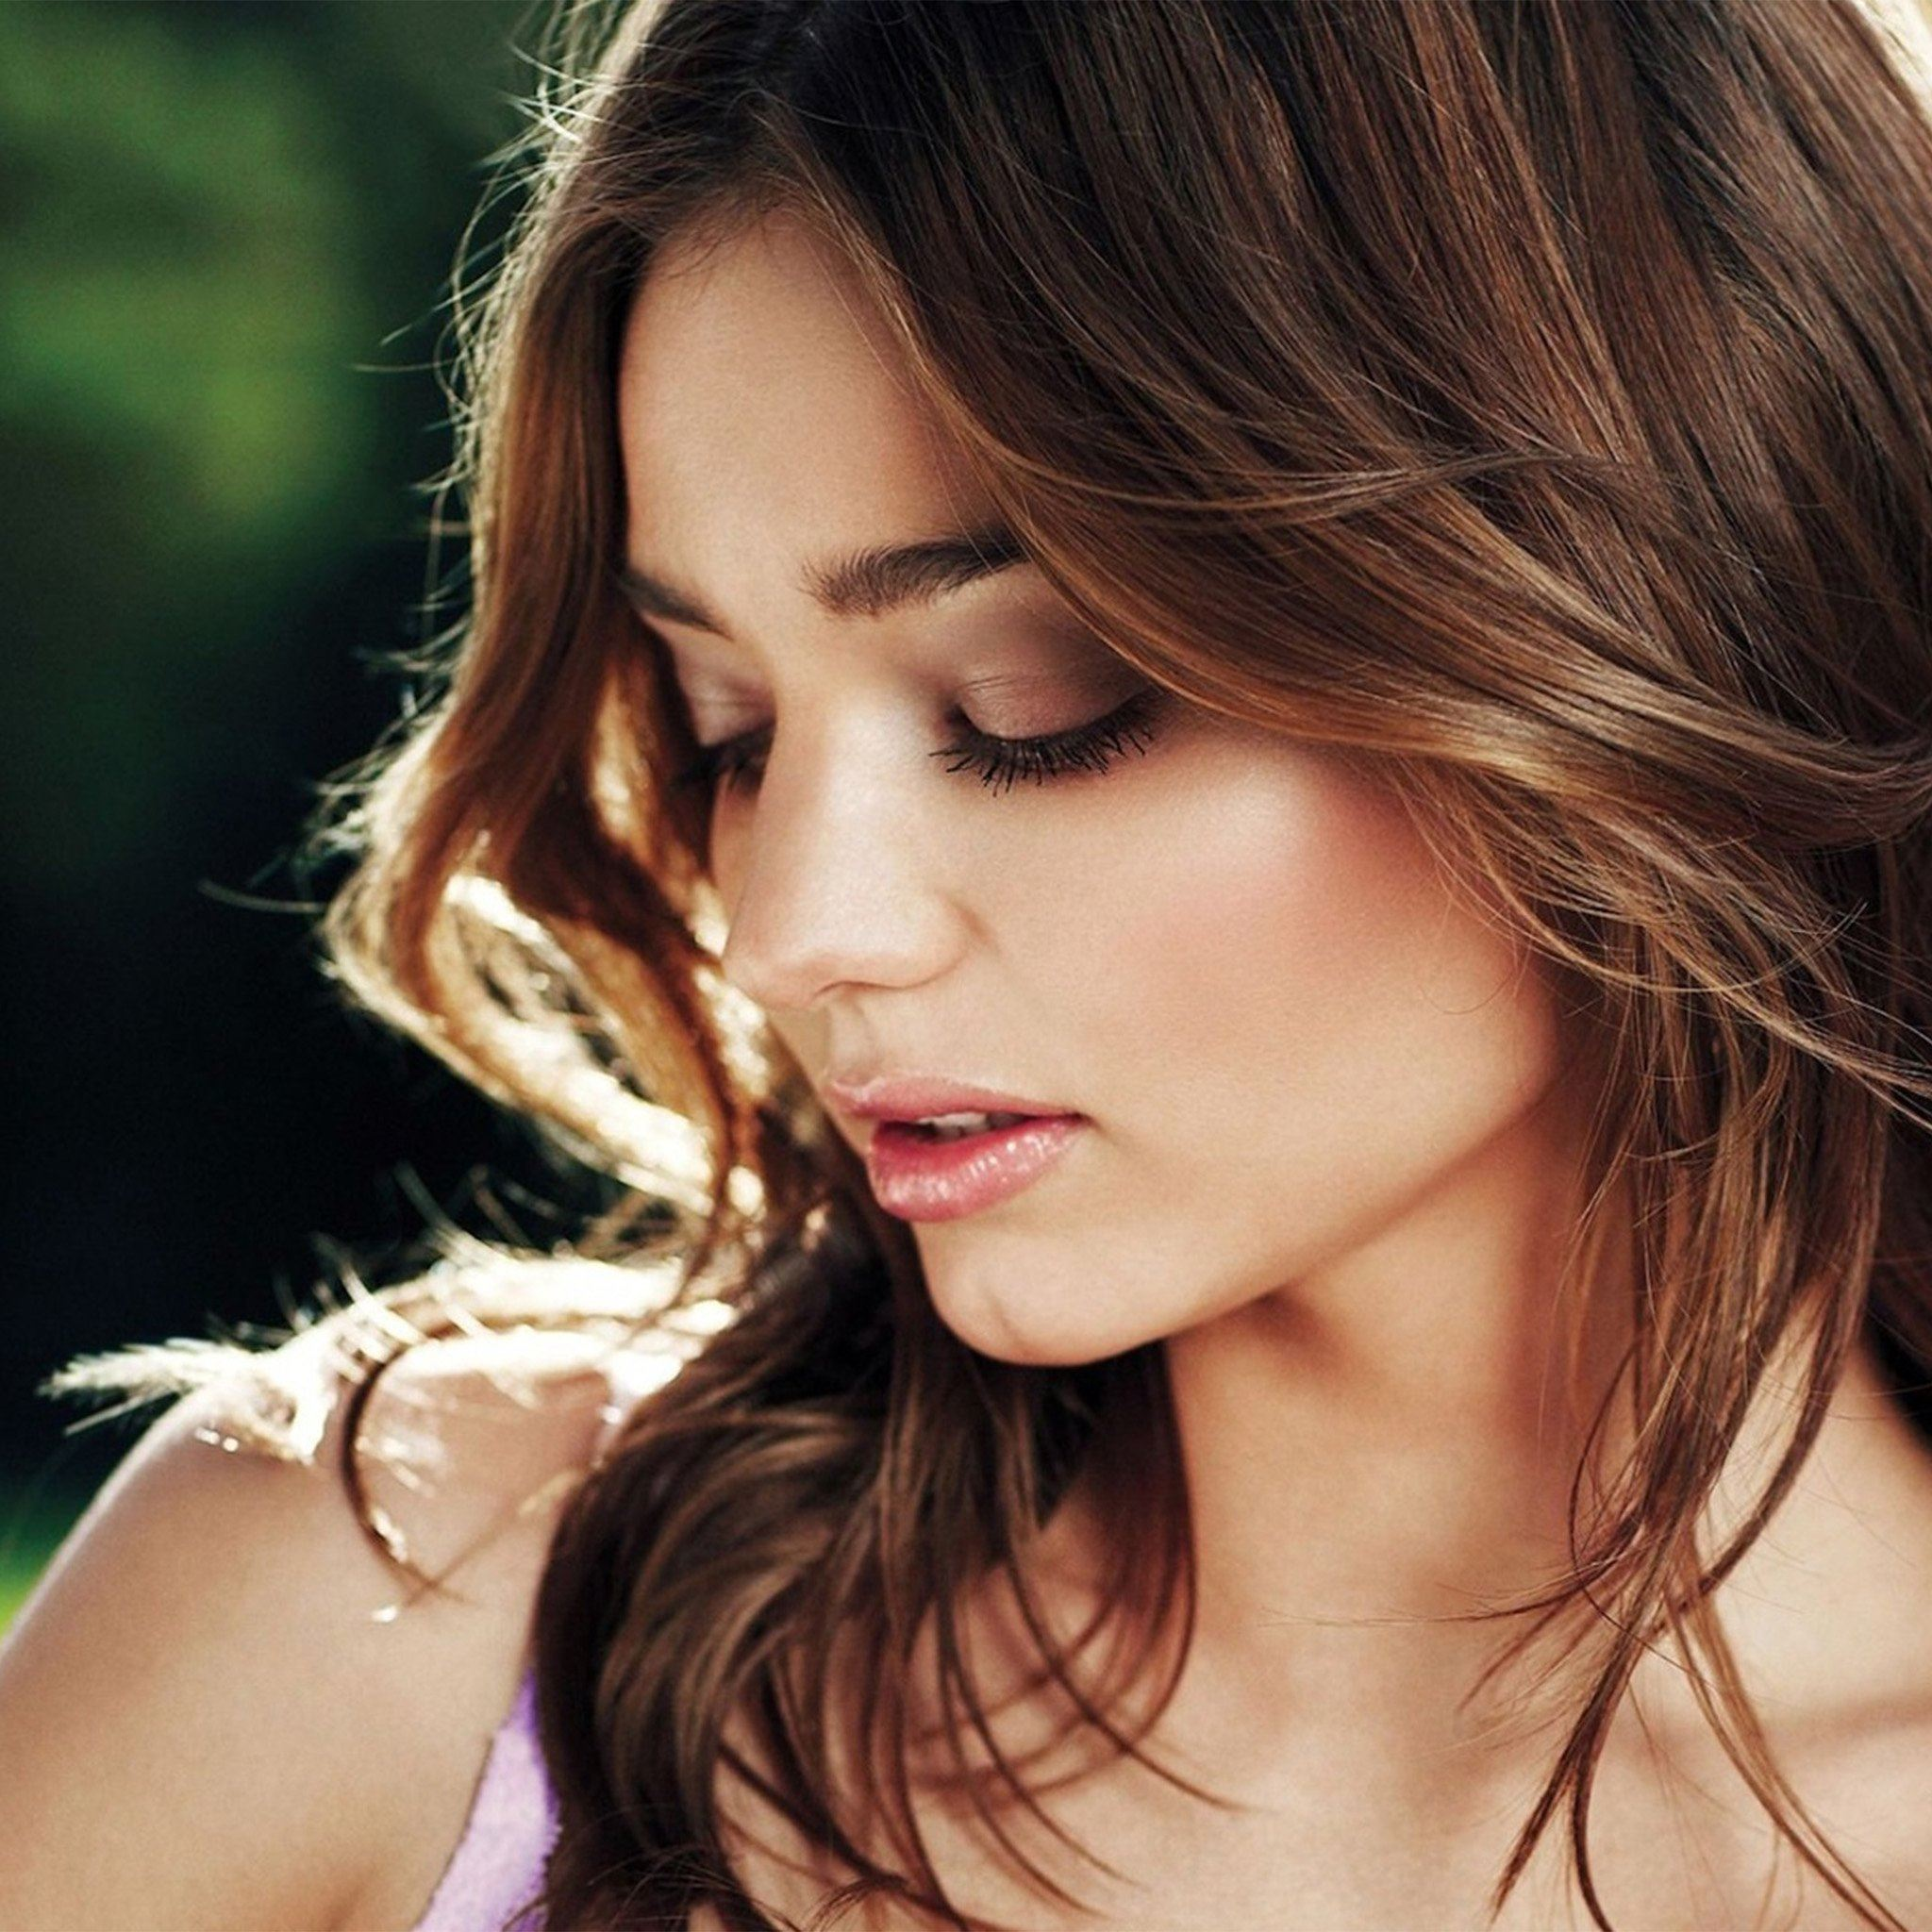 Miranda Kerr Face Sexy Victoria Beatury Model iPad Air wallpaper